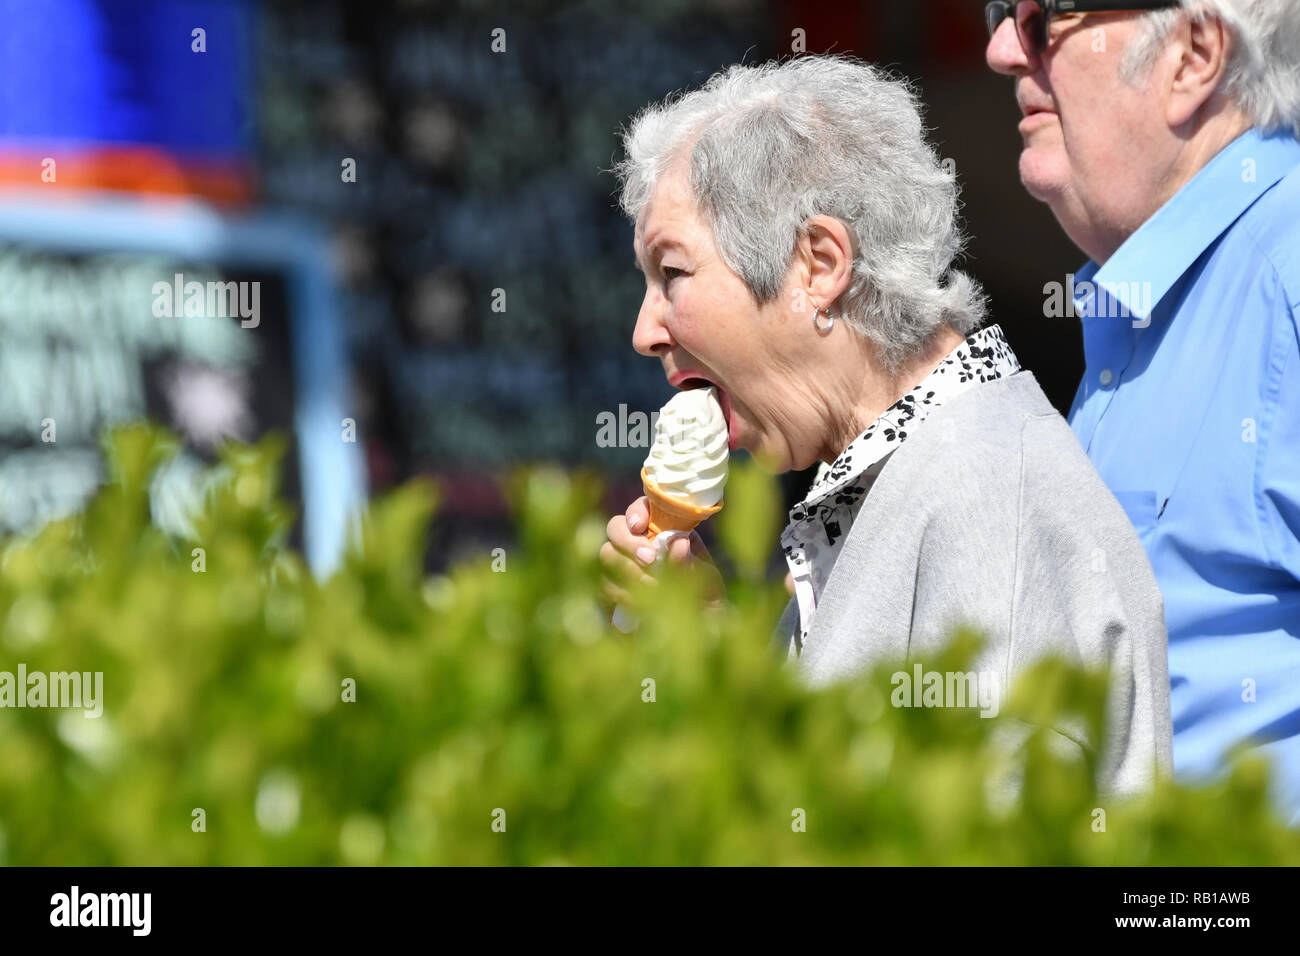 Senior couple walking on a promenade on a warm Spring day in the UK, eating ice creams. - Stock Image